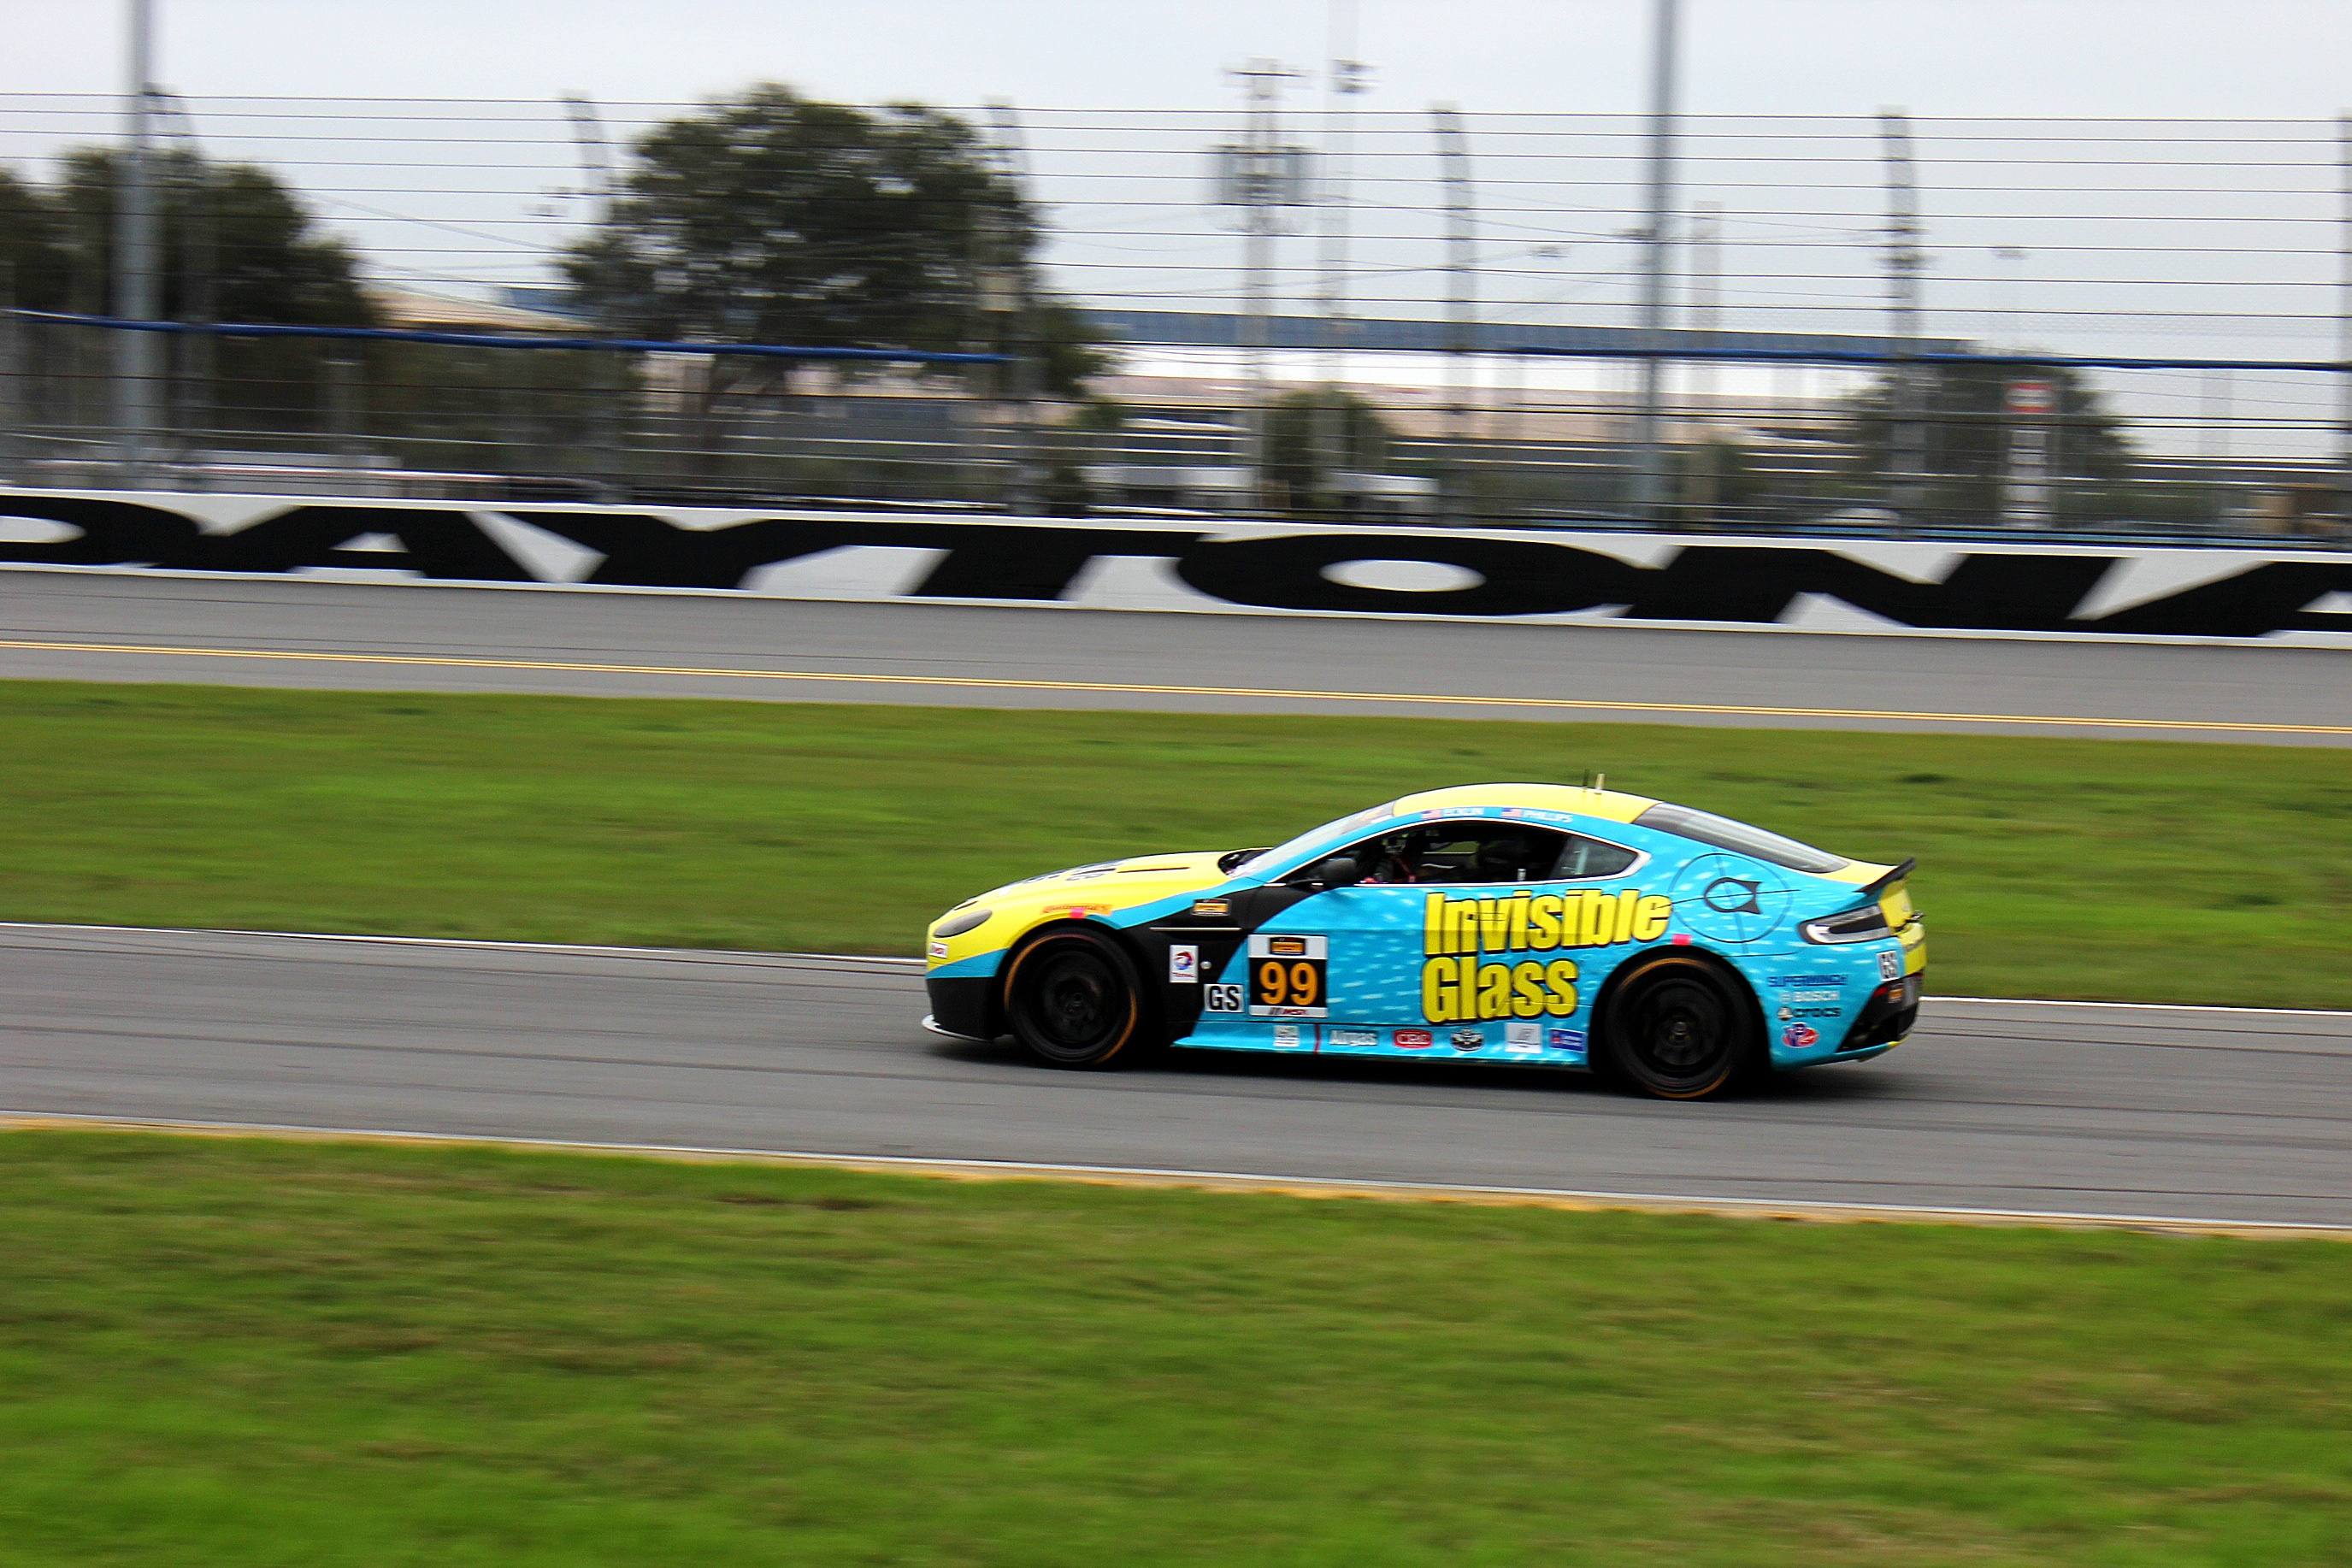 The very competitive Continental Tire Sports Car Challenge, featuring American muscle cars like the Mustang and Camaro racing European entries like BMW, Aston Martin and Porsche, will kick off its 2014 season at Daytona on Saturday, Jan. 25. The race is included in Rolex 24 ticket price. (Chris Jasurek/Epoch Times)